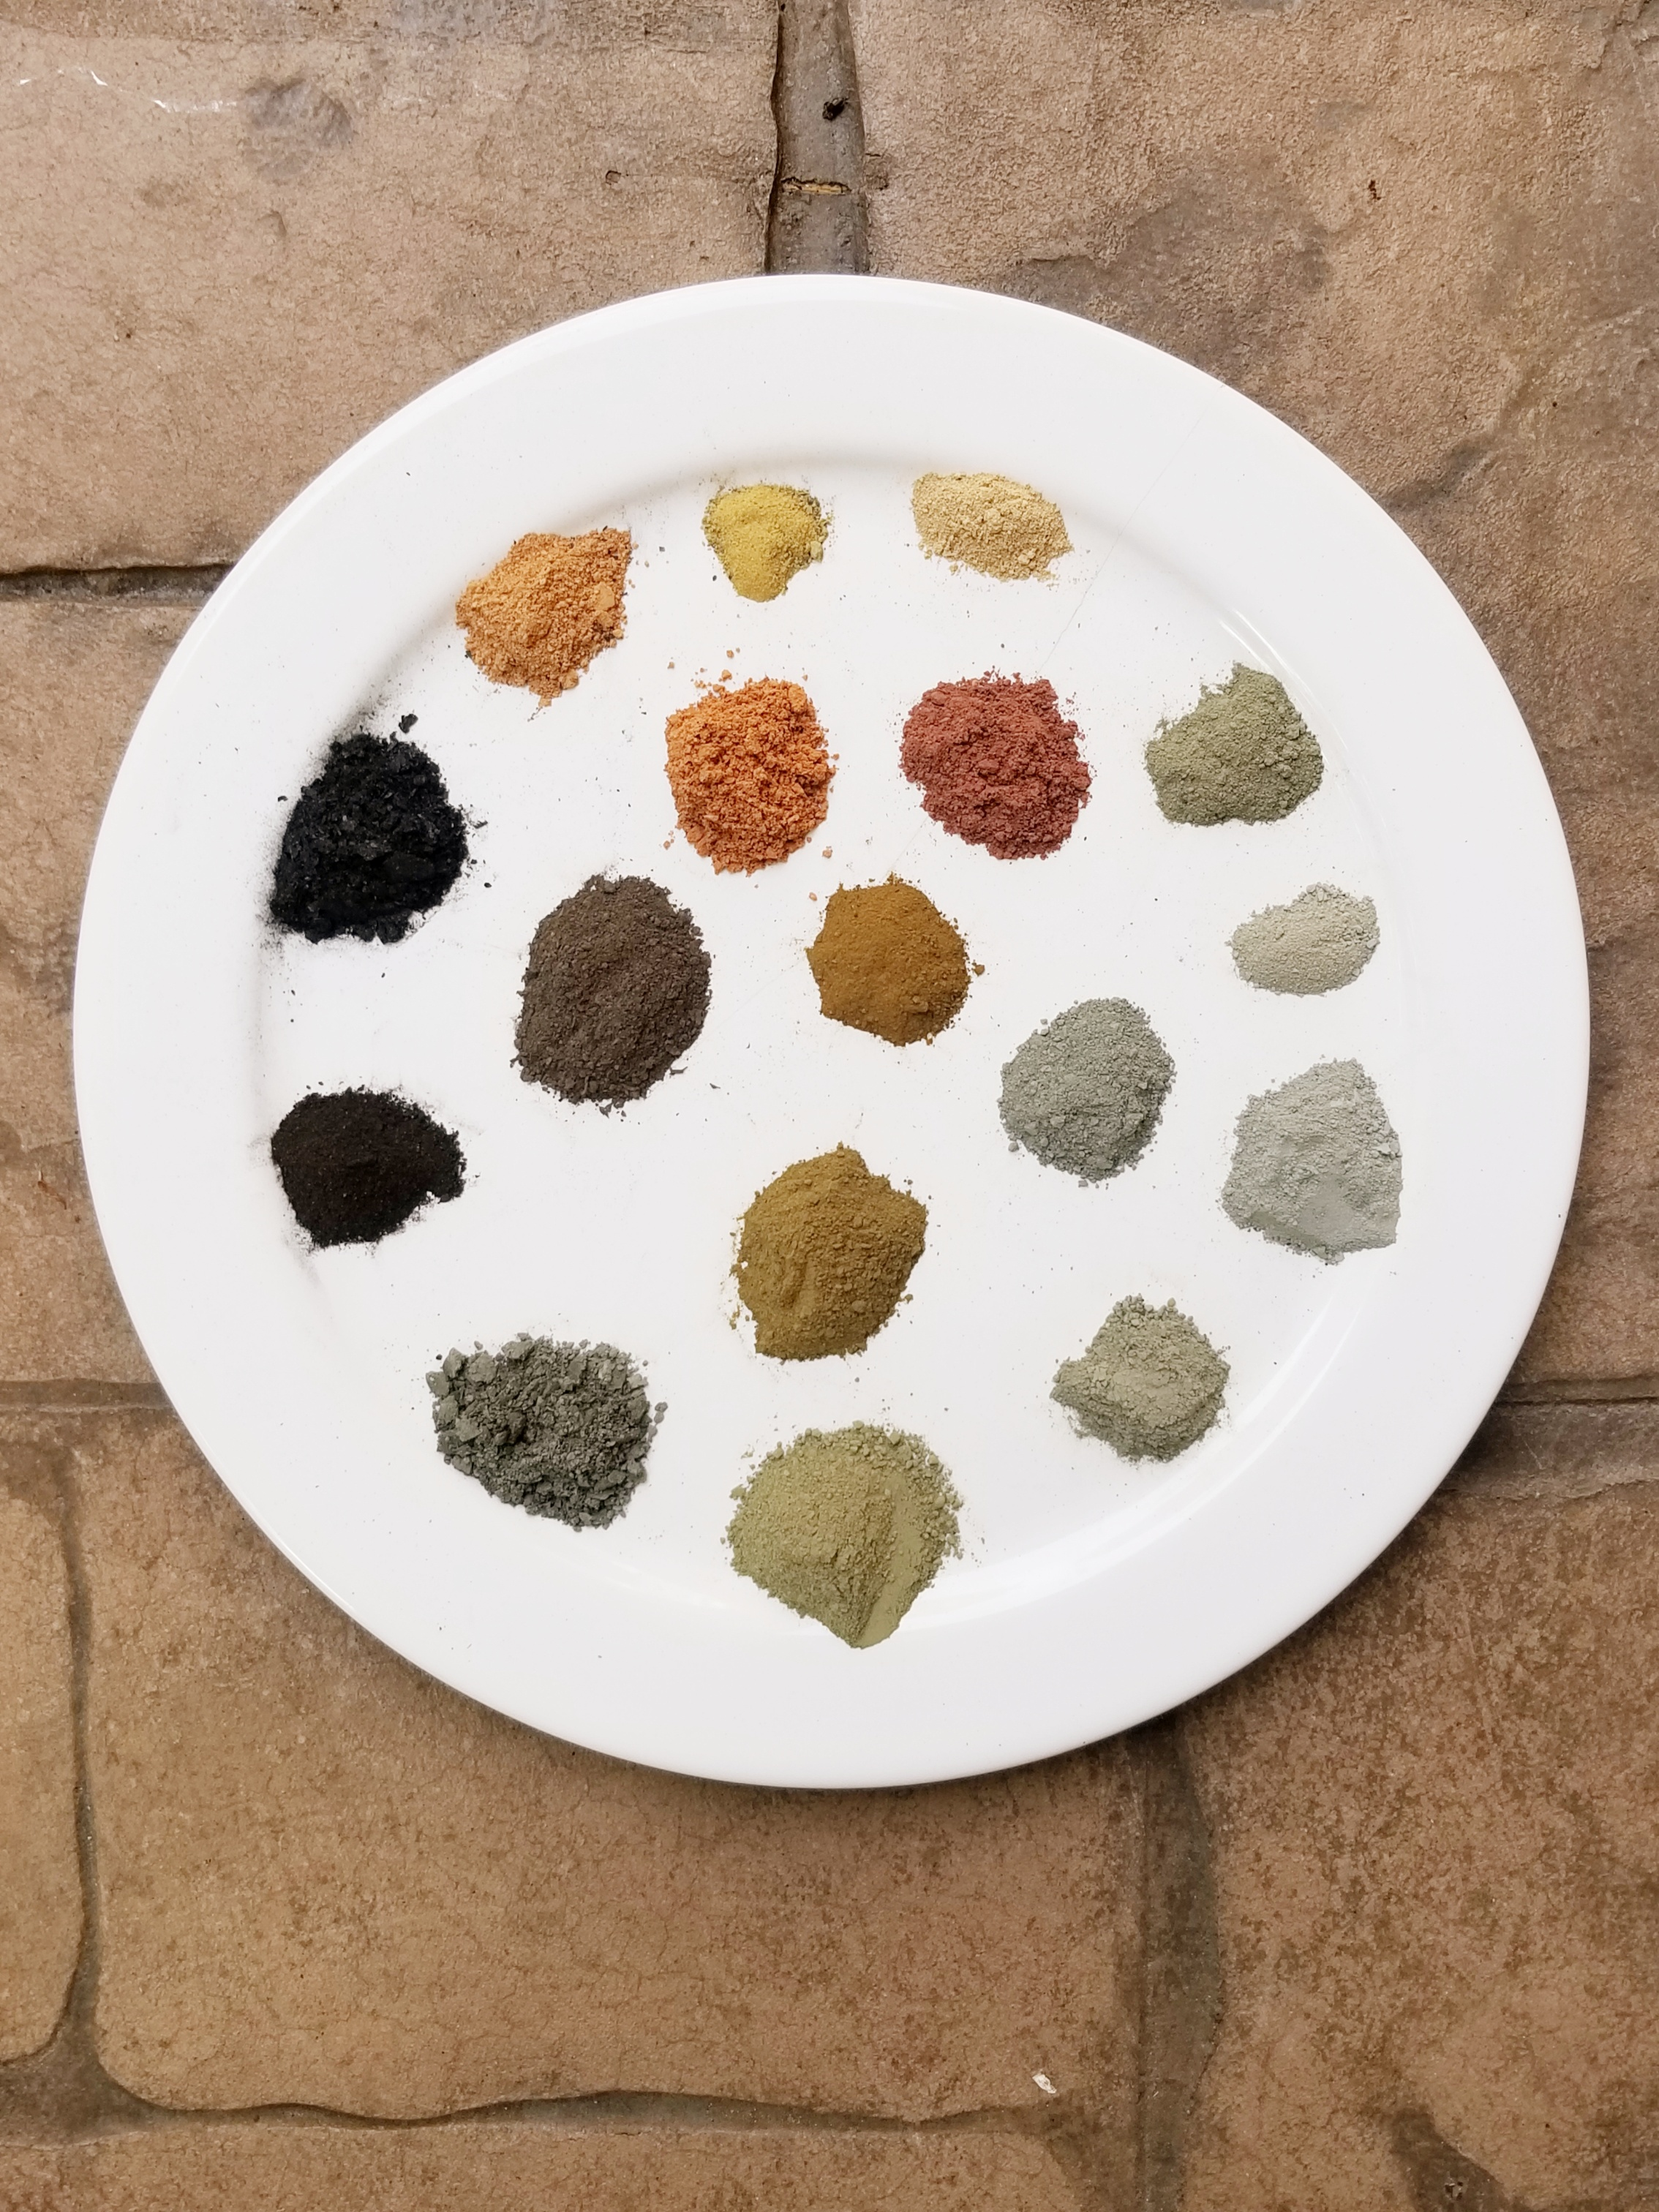 Pigments I foraged and ground from Whidbey Island thanks to the mineral genius of Heidi Gustafson, June 2019.